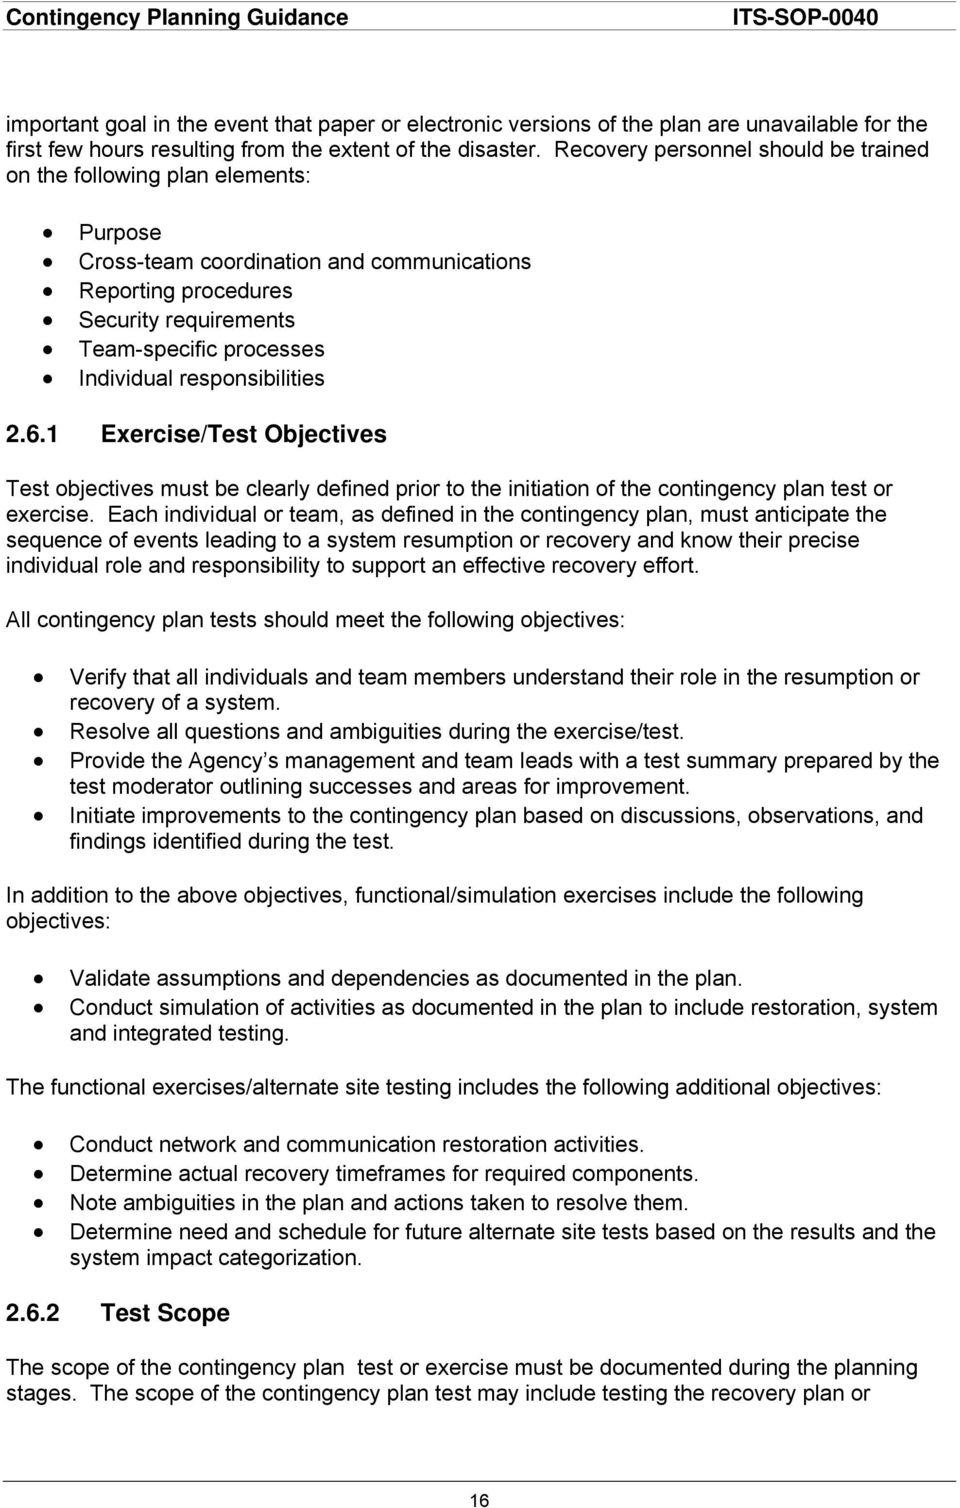 responsibilities 2.6.1 Exercise/Test Objectives Test objectives must be clearly defined prior to the initiation of the contingency plan test or exercise.